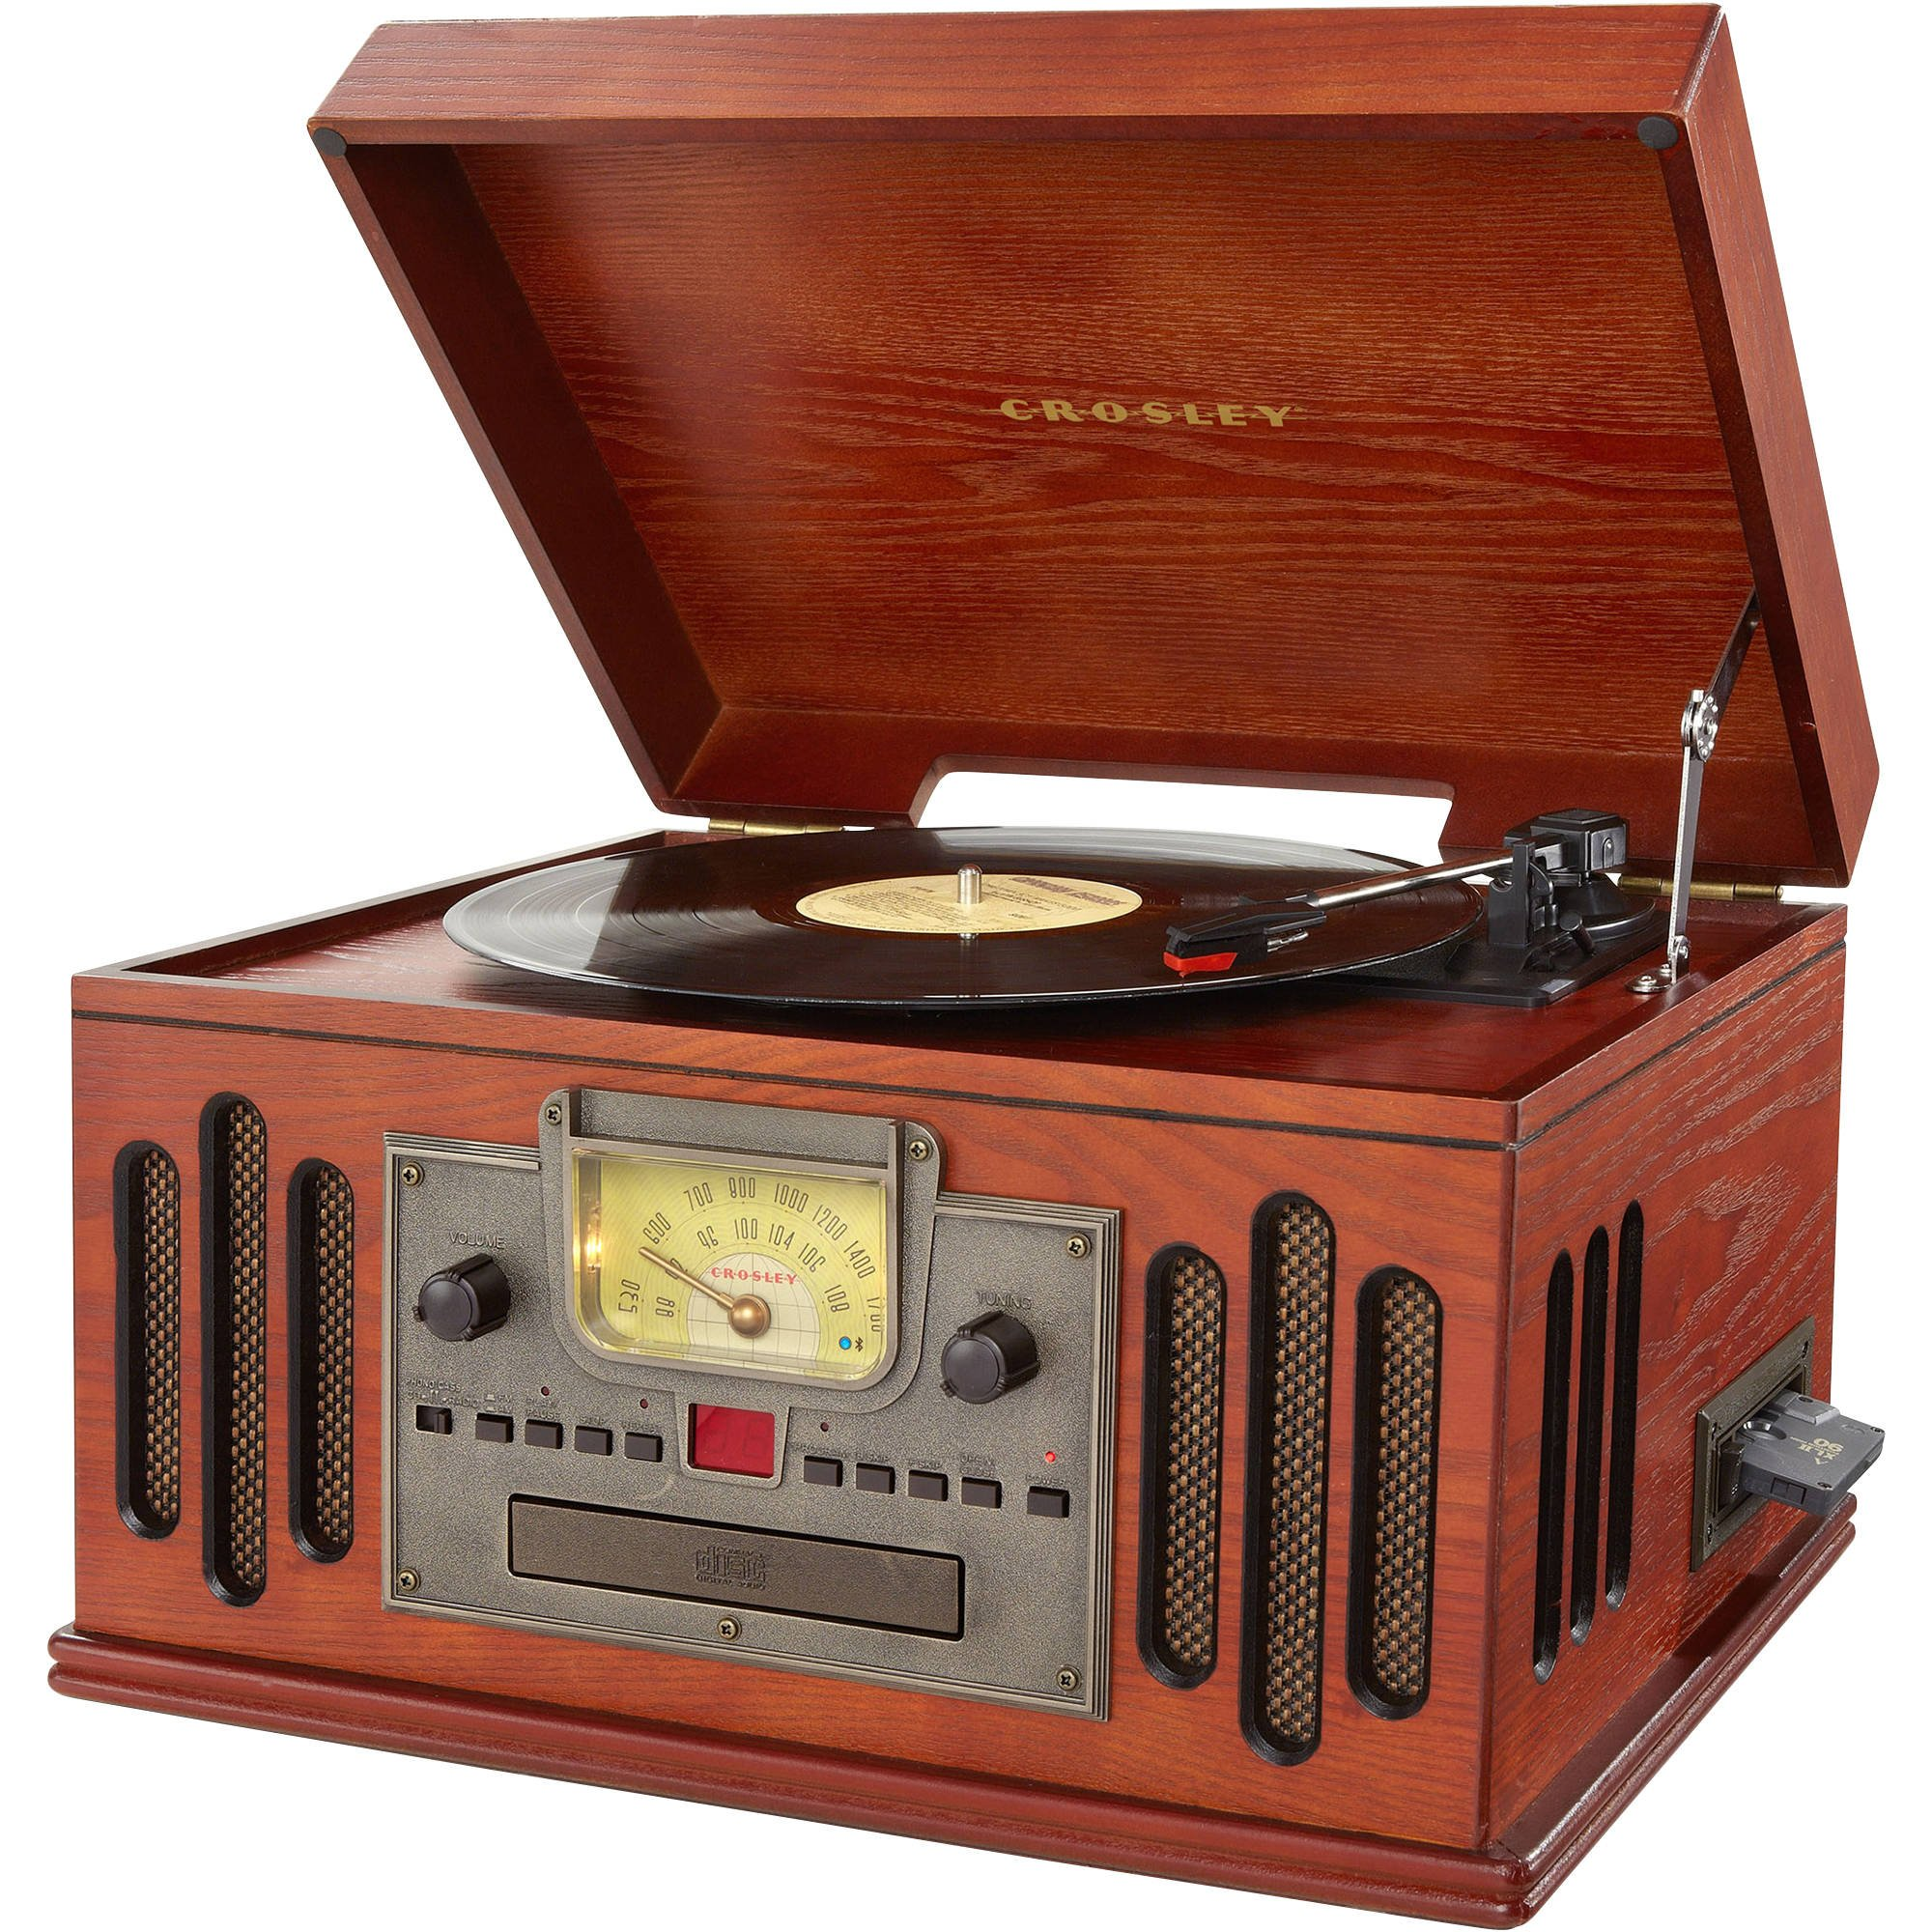 Crosley CR704D-PA Musician 3-Speed Turntable with Radio, Cd/Cassette Player, Aux-in and Bluetooth, Paprika by Crosley